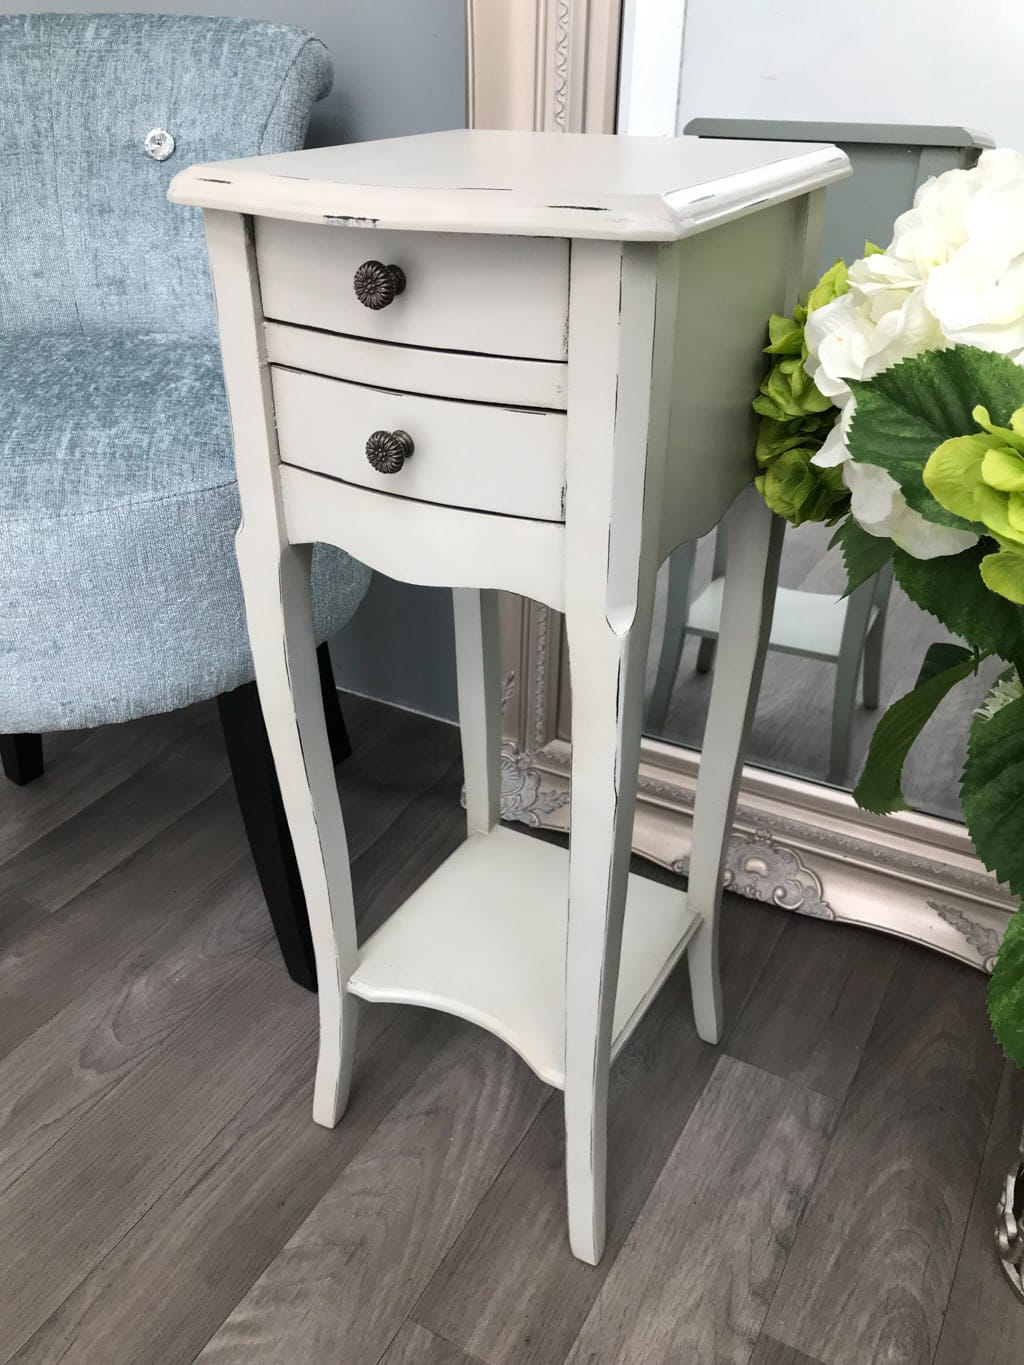 Pair of Small Bedside Tables in pale grey with two Drawers